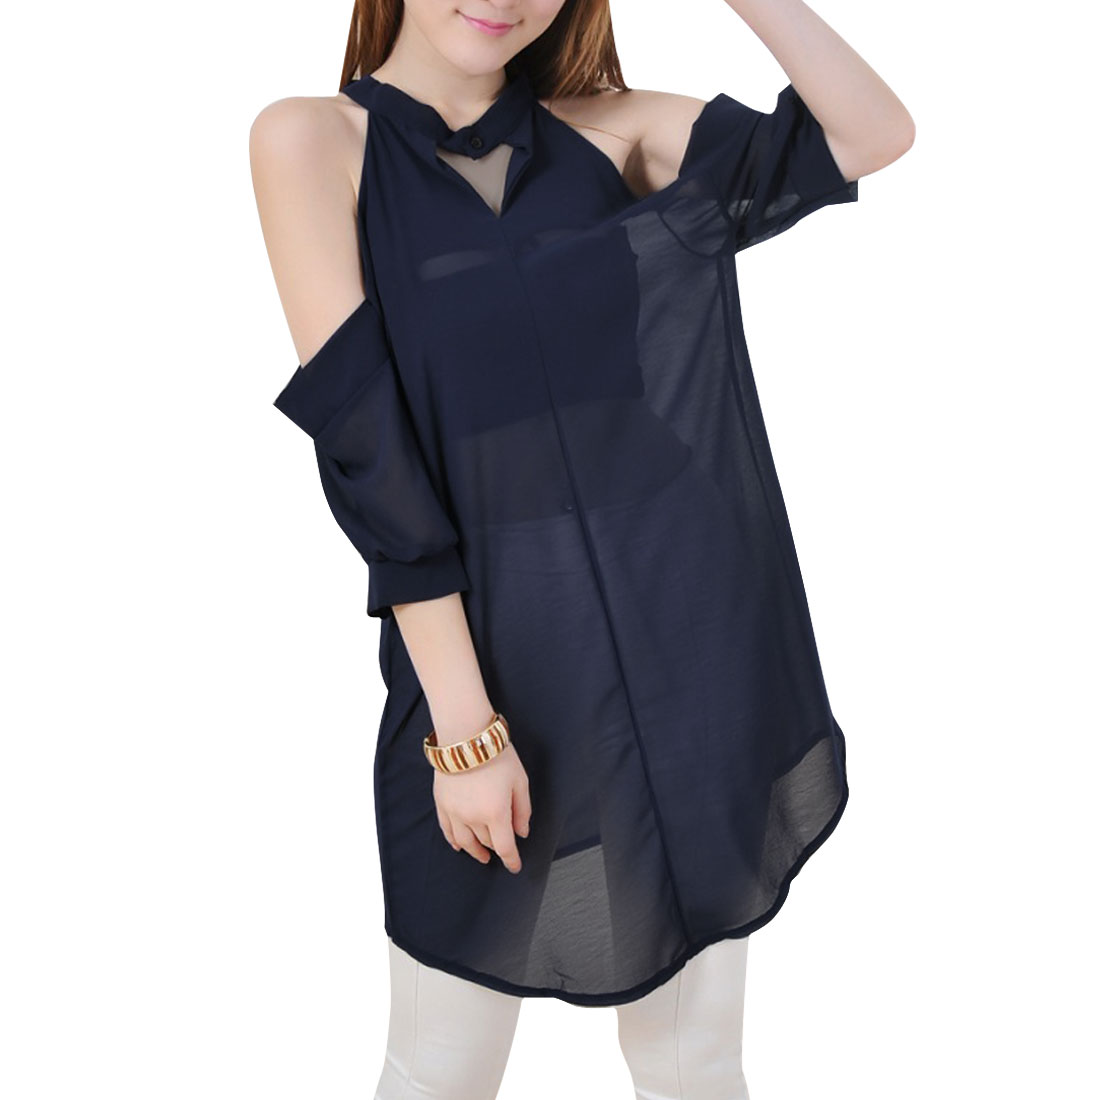 Women Stand Collar Cut Out Semi Sheer Casual Blouse Navy Blue S